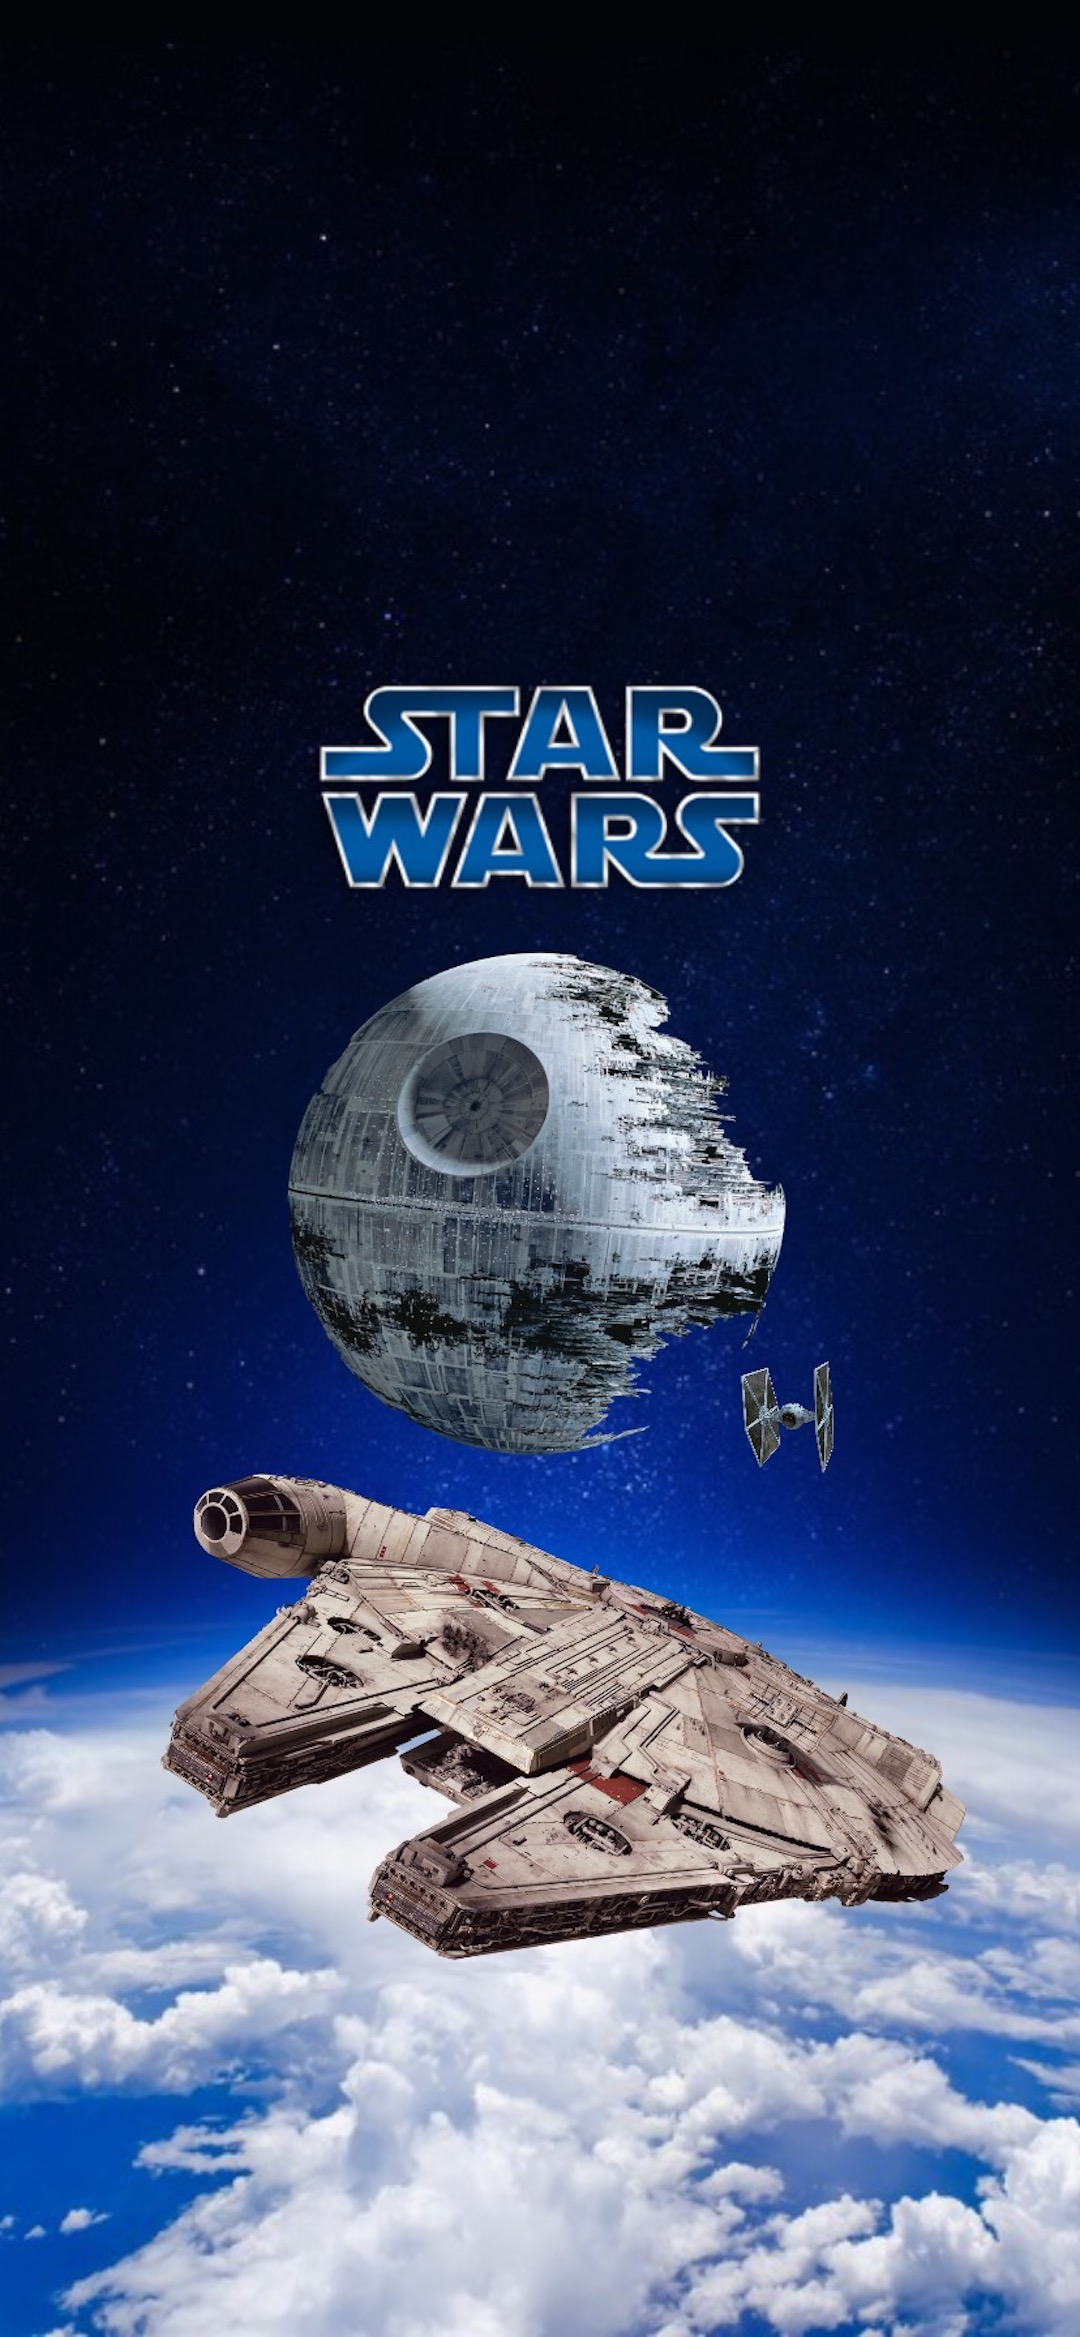 falcon star wars iphone X wallpaper by iamjoeya